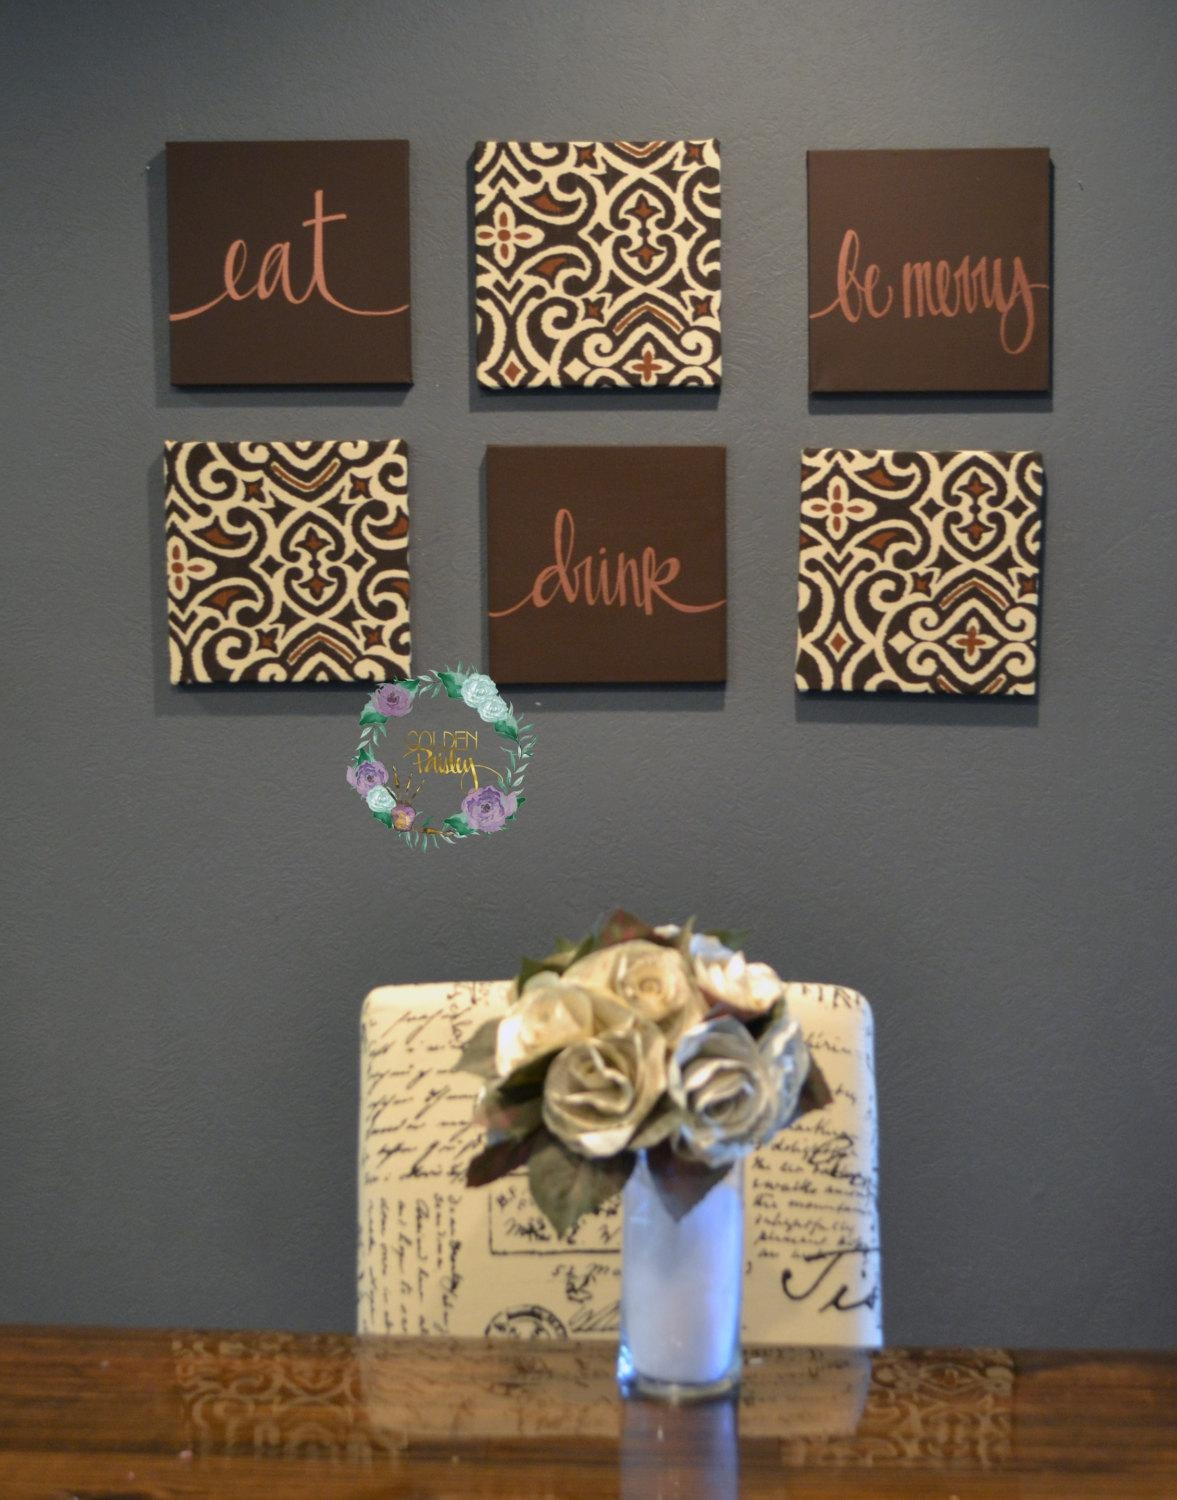 Eat Drink & Be Merry Wall Art Pack Of 6 Canvas Wall Hangings In Fabric Canvas Wall Art (Image 10 of 20)